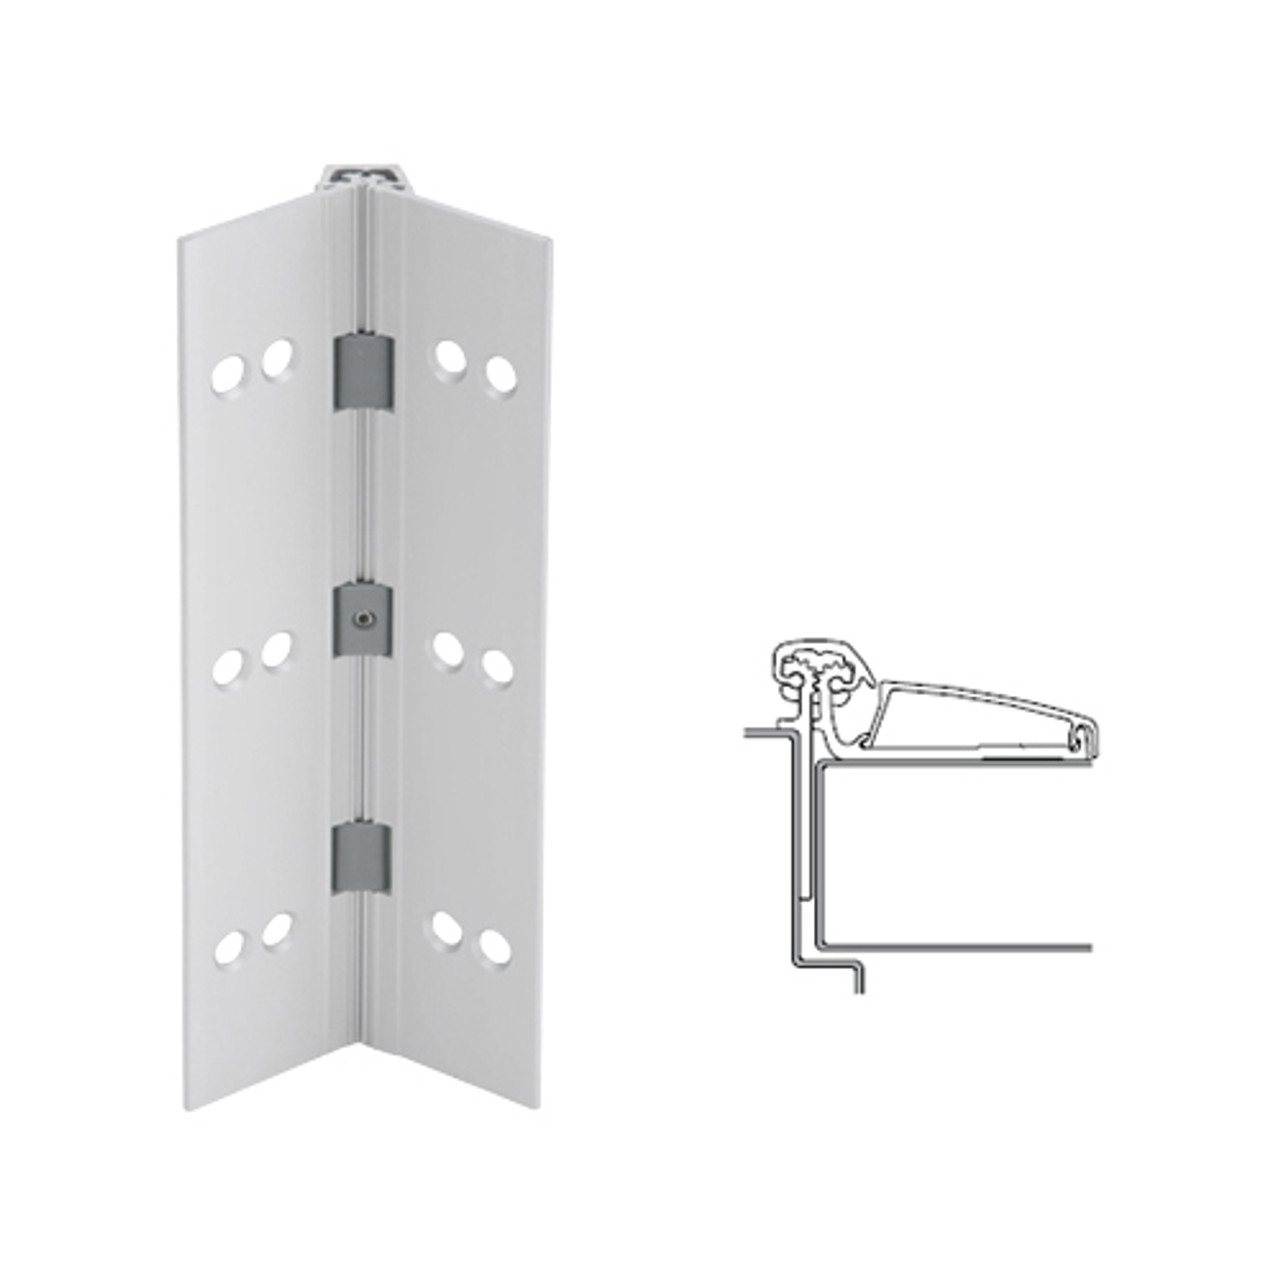 045XY-US28-85-TFWD IVES Adjustable Half Surface Continuous Geared Hinges with Thread Forming Screws in Satin Aluminum